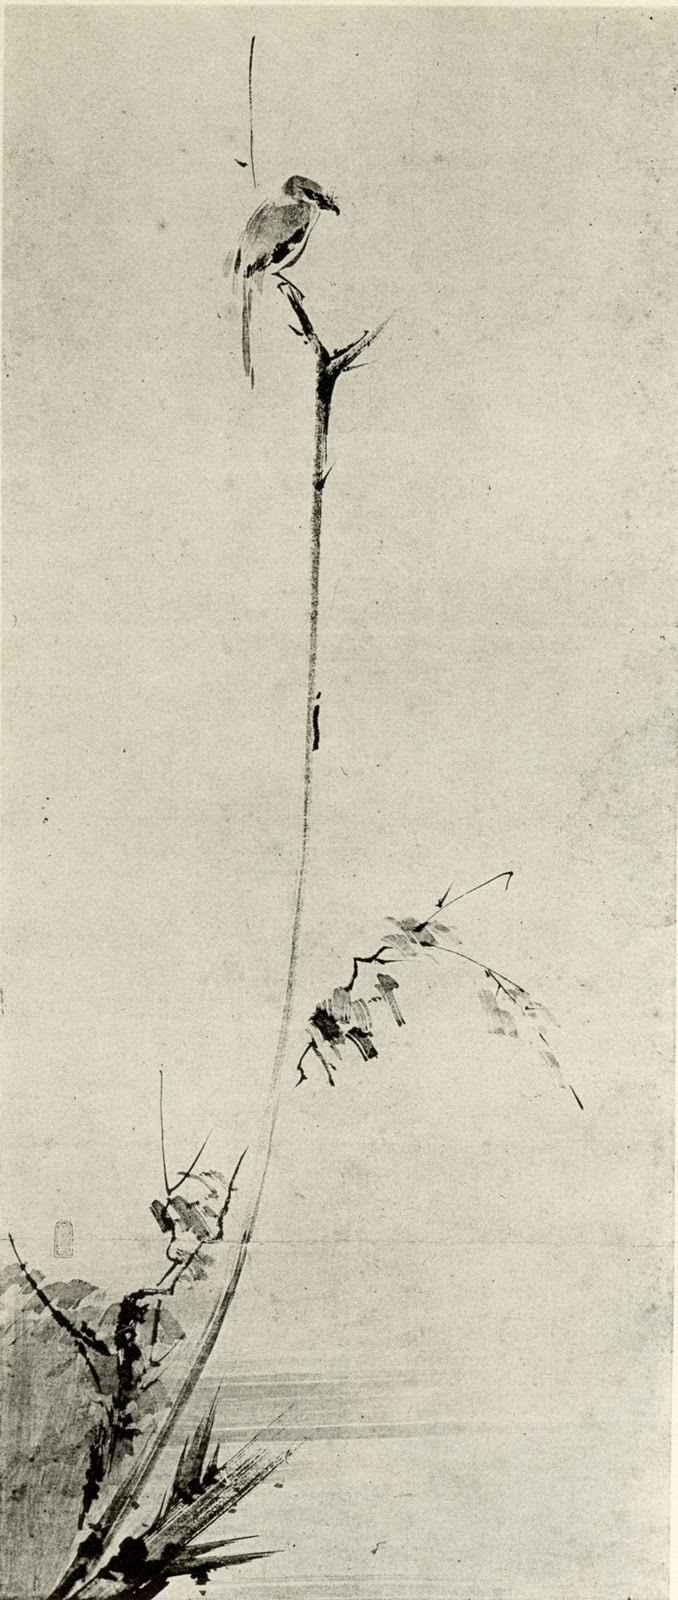 Shrike on a Dead Branch, by Miyamoto Musashi. Artist, calligrapher, writer, philosopher, ronin, greatest Samurai swordsman. Shrines mark salient incidents in his life.: Ronin